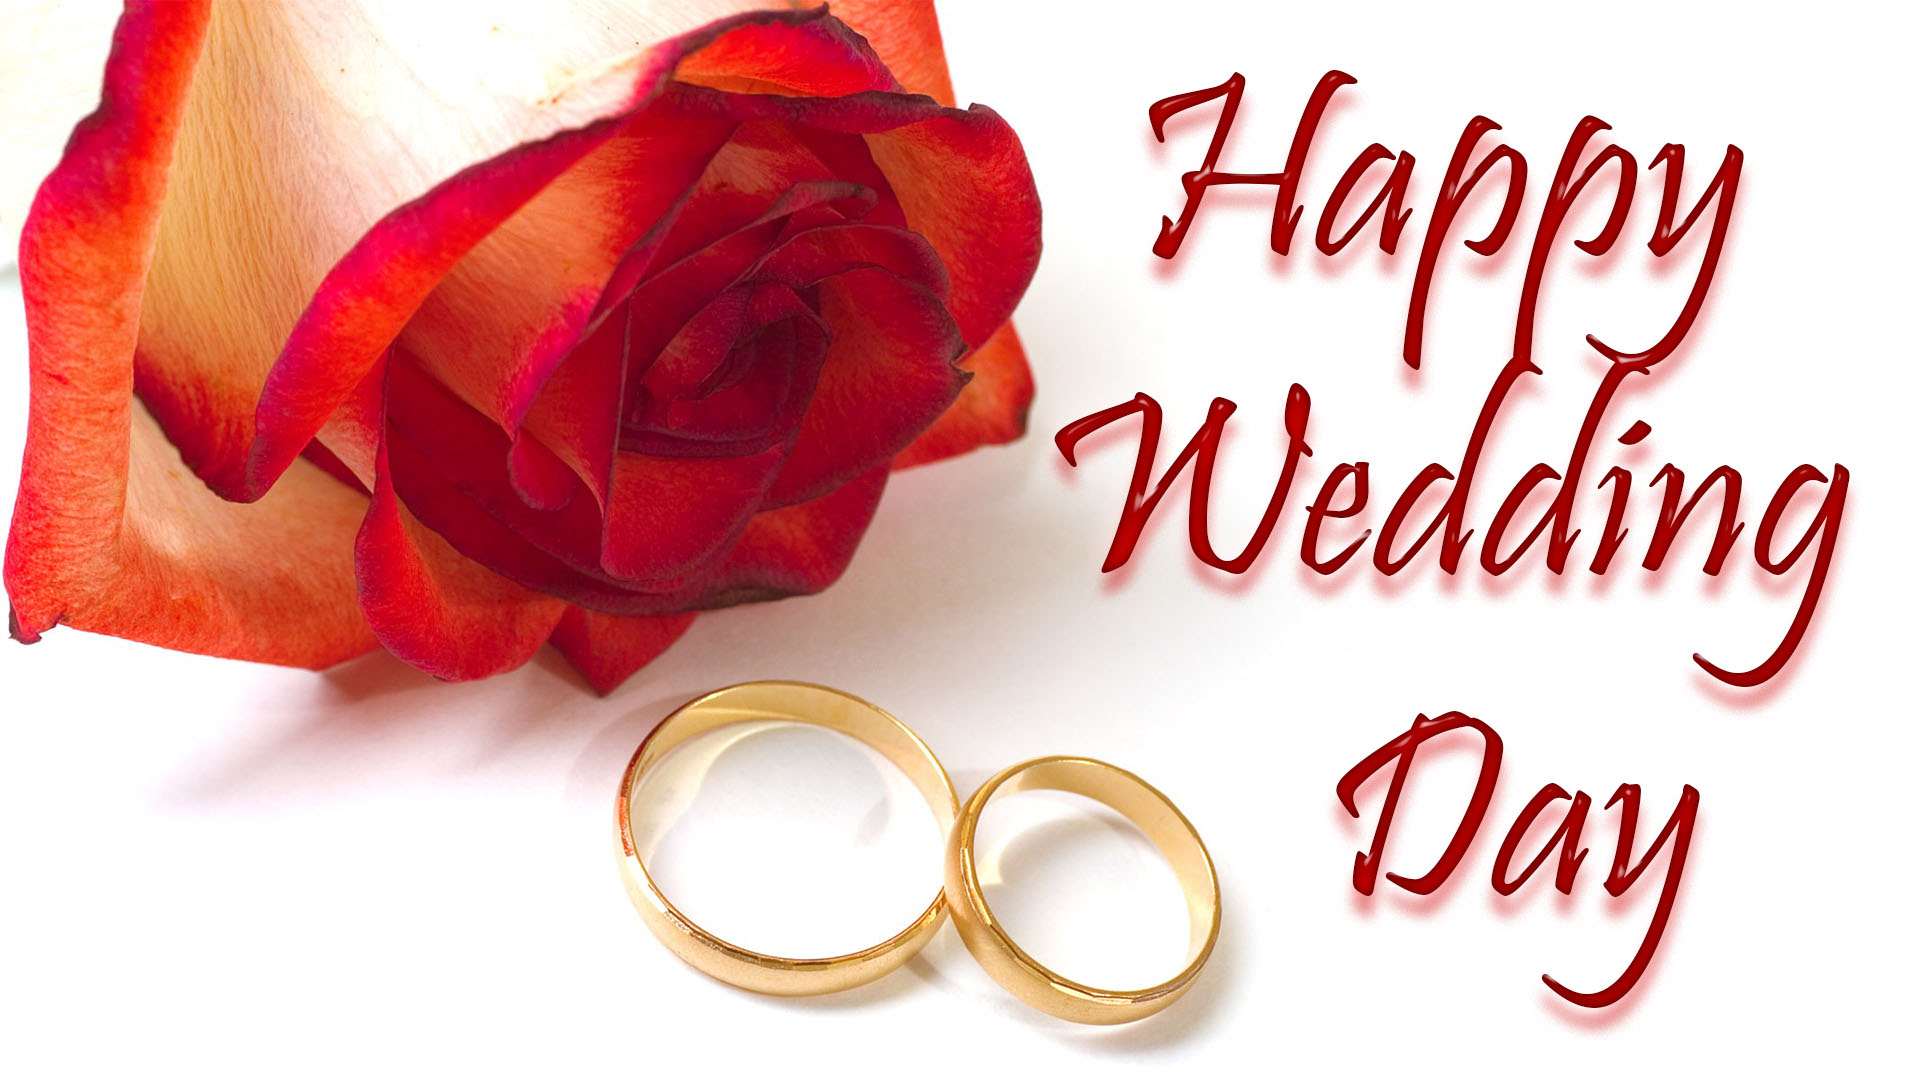 Happy Wedding Day Greetings Cards Images Marriage Wishes